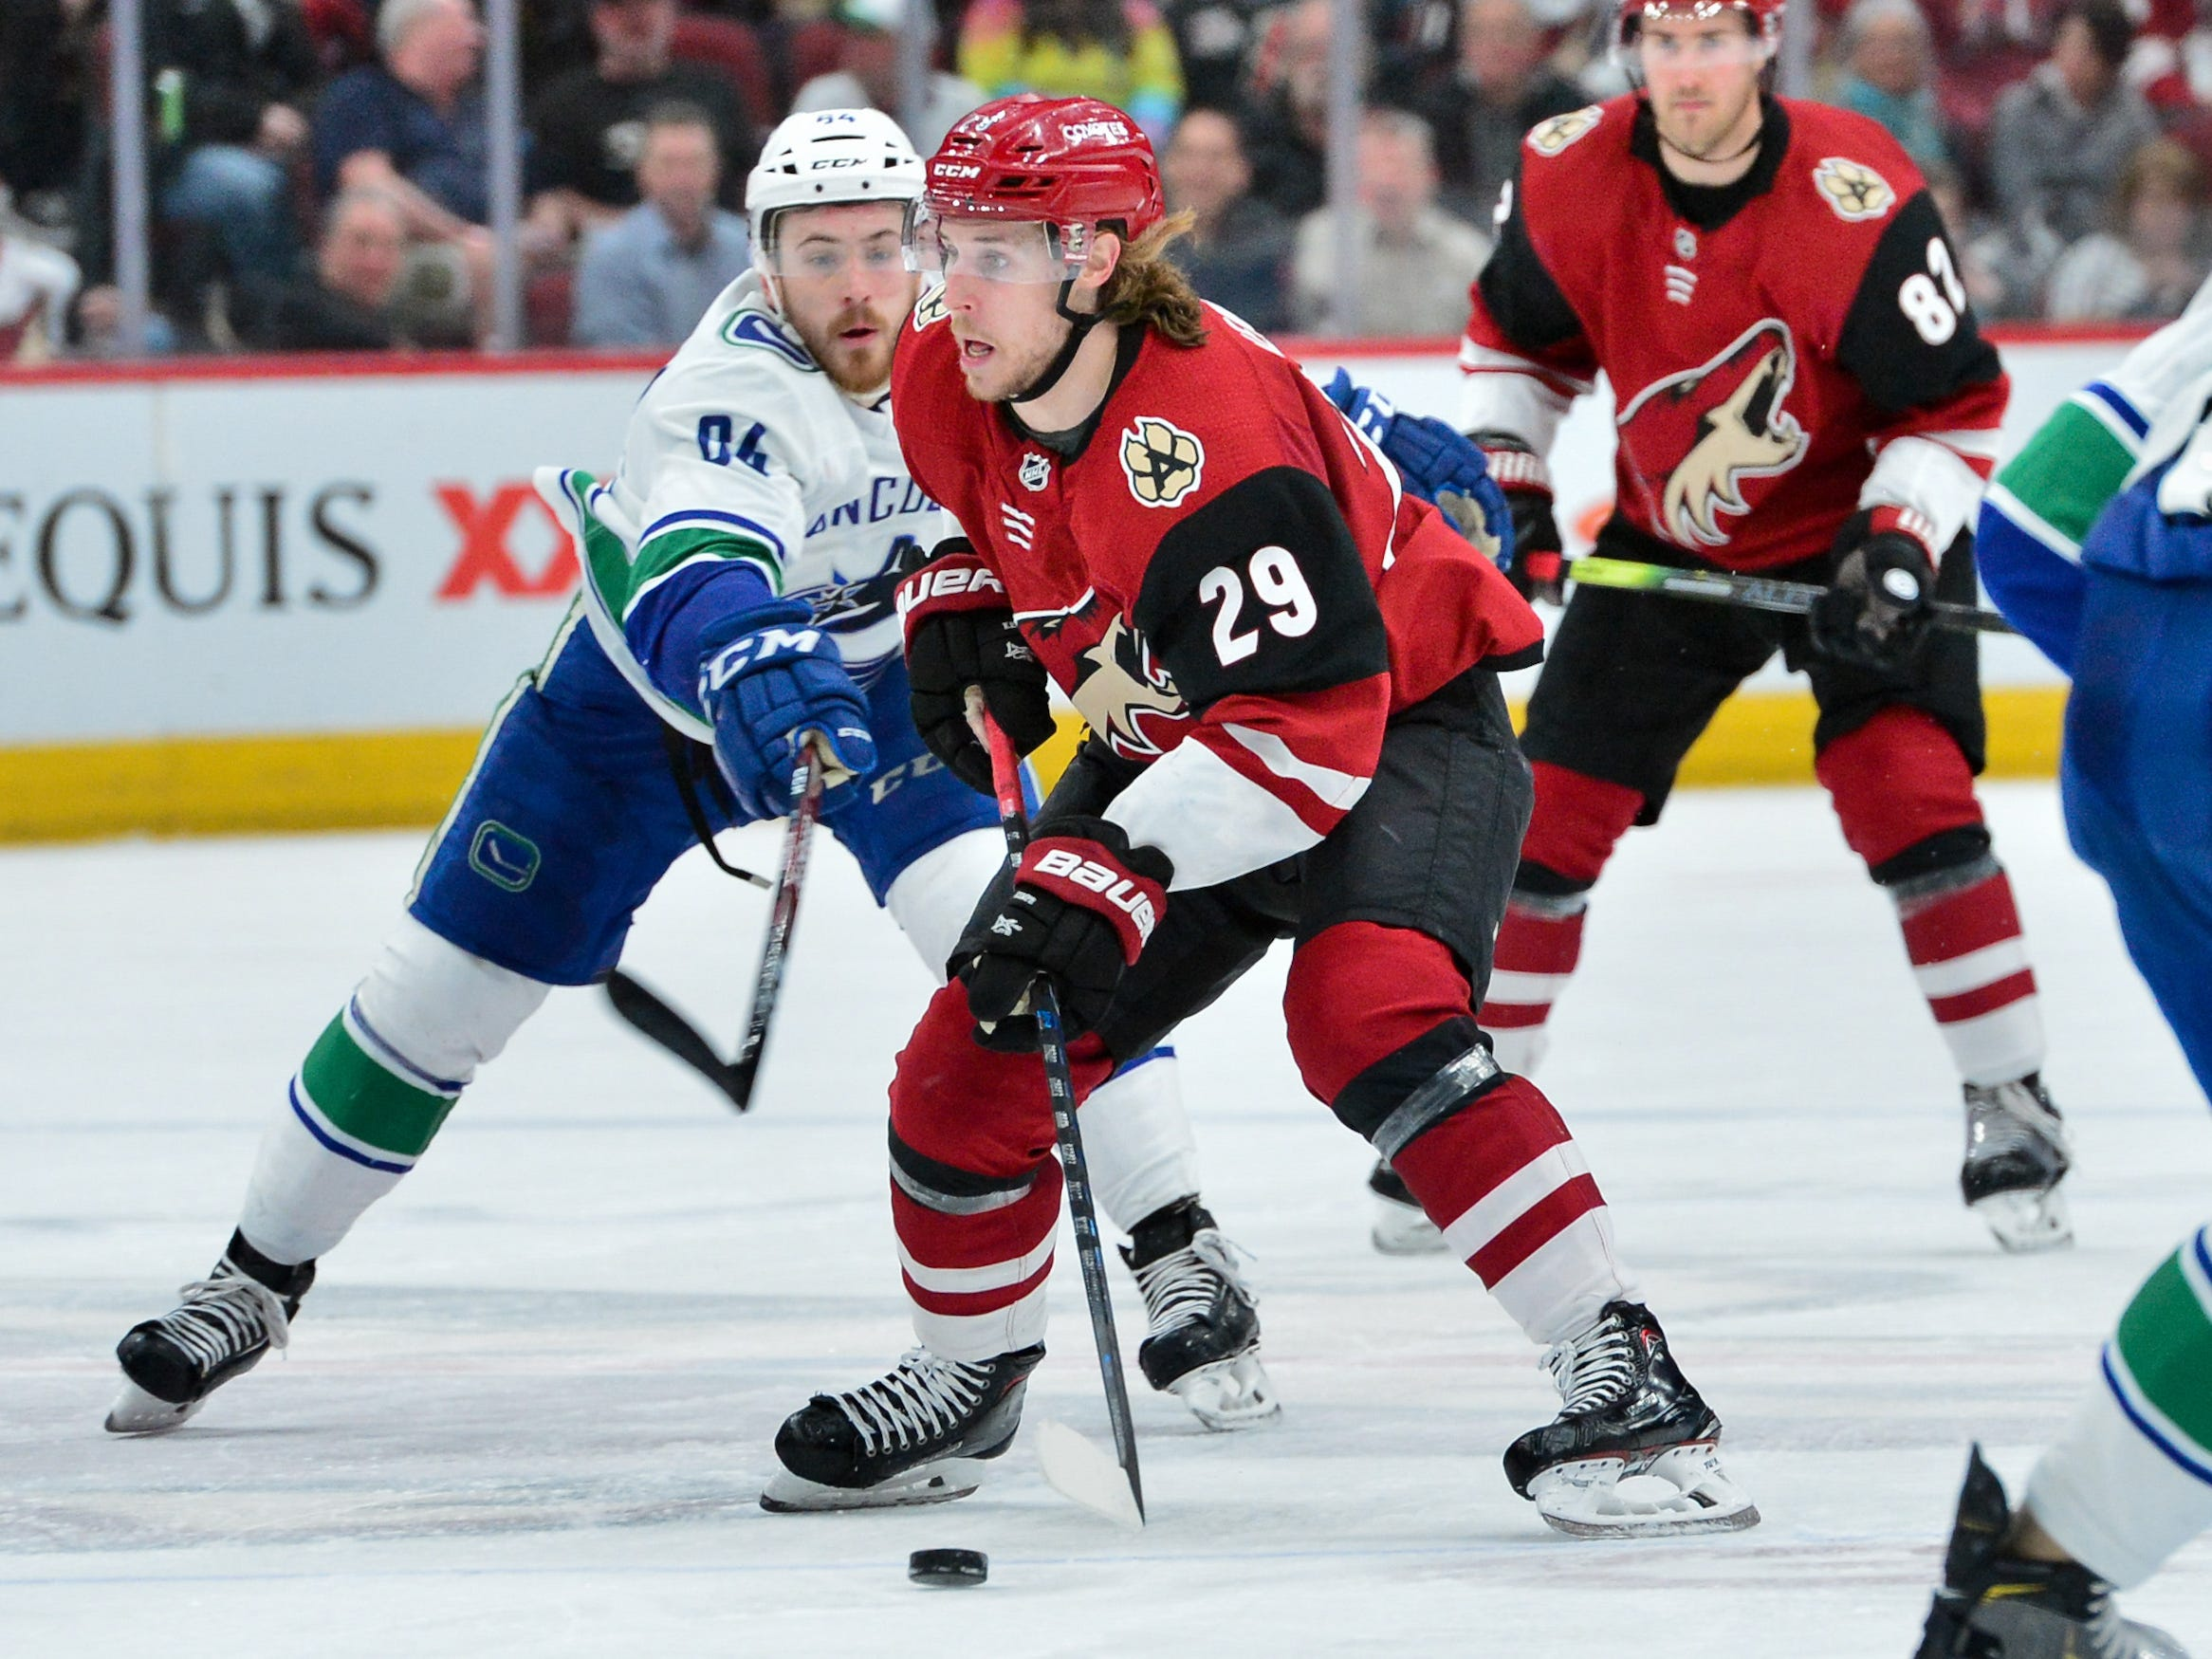 Feb 28, 2019; Glendale, AZ, USA; Arizona Coyotes right wing Mario Kempe (29) skates with the puck as Vancouver Canucks center Tyler Motte (64) defends during the second period at Gila River Arena.